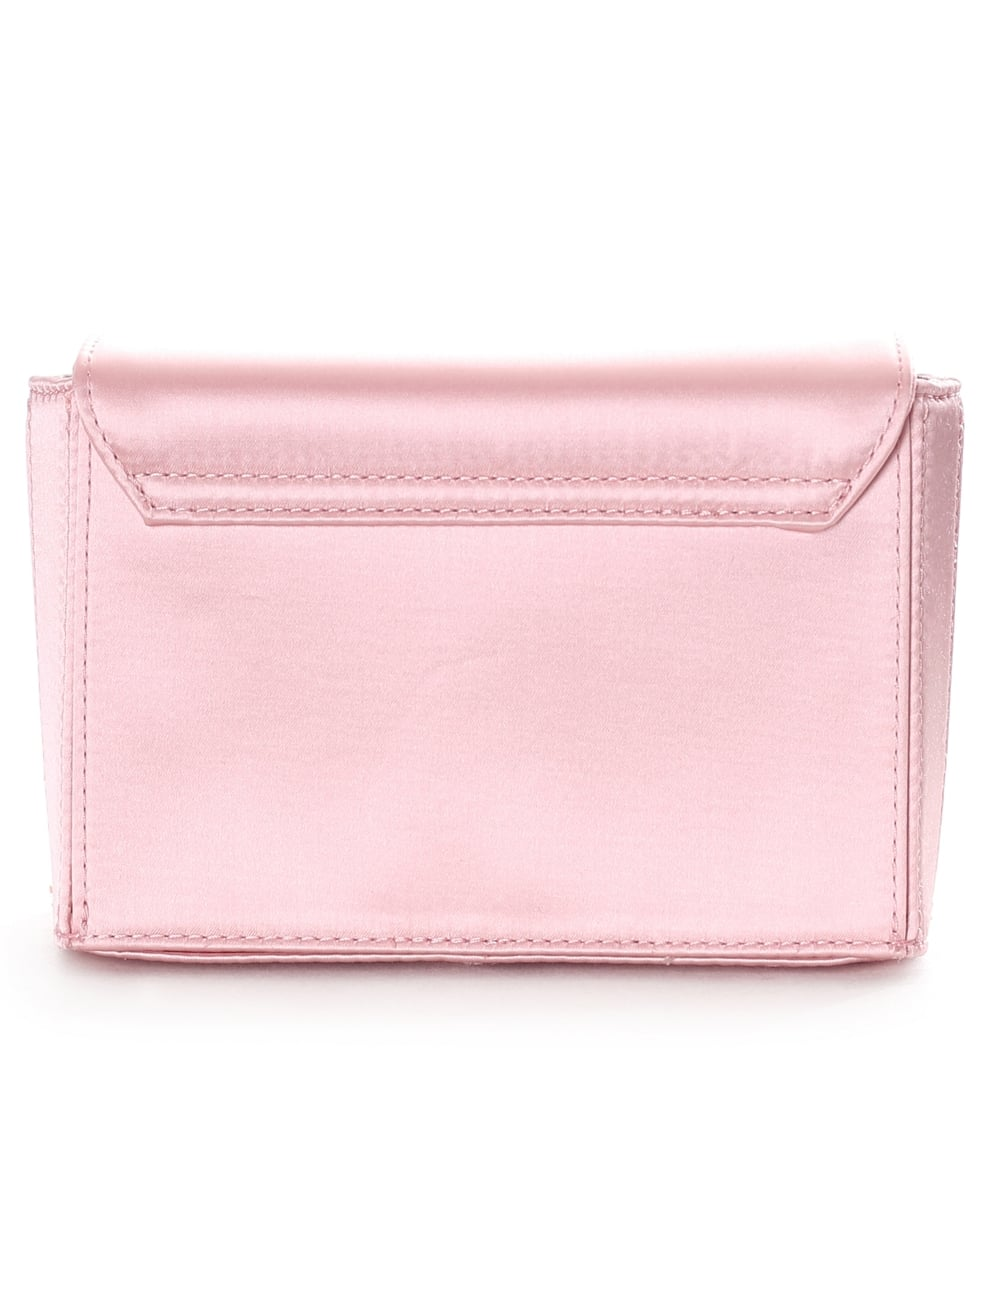 77e8c87e5d8 Ted Baker Selinaa Women's Brooch Detail Evening Bag